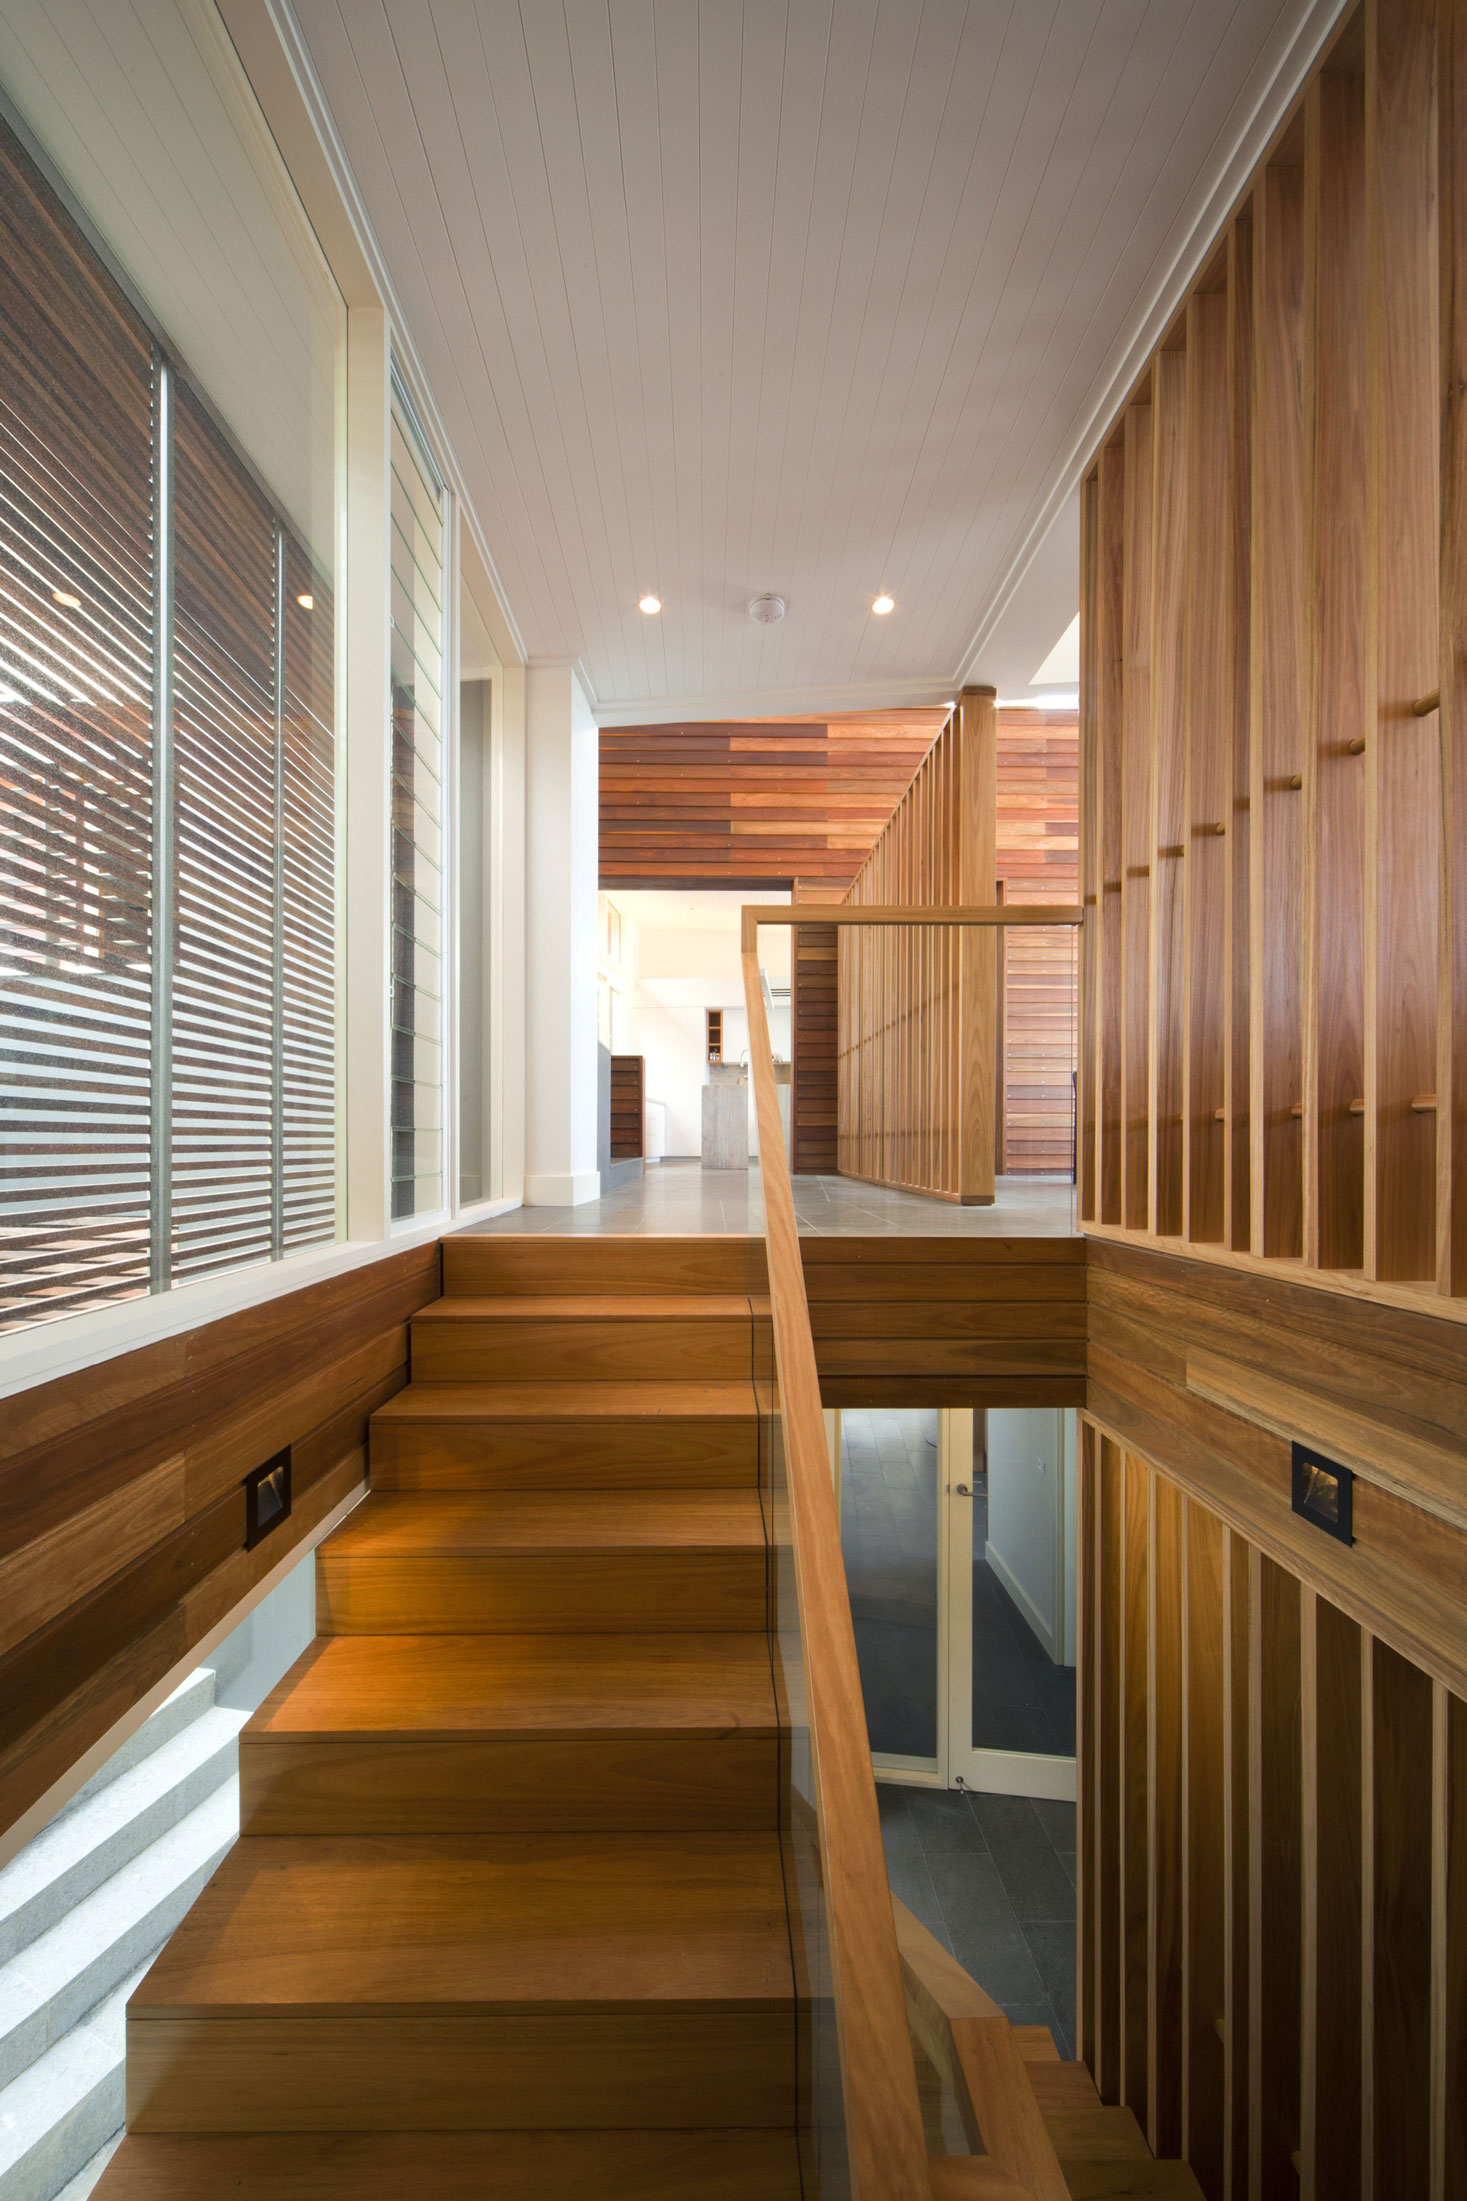 Private Residence by Pike Withers Interior Architecture (11)